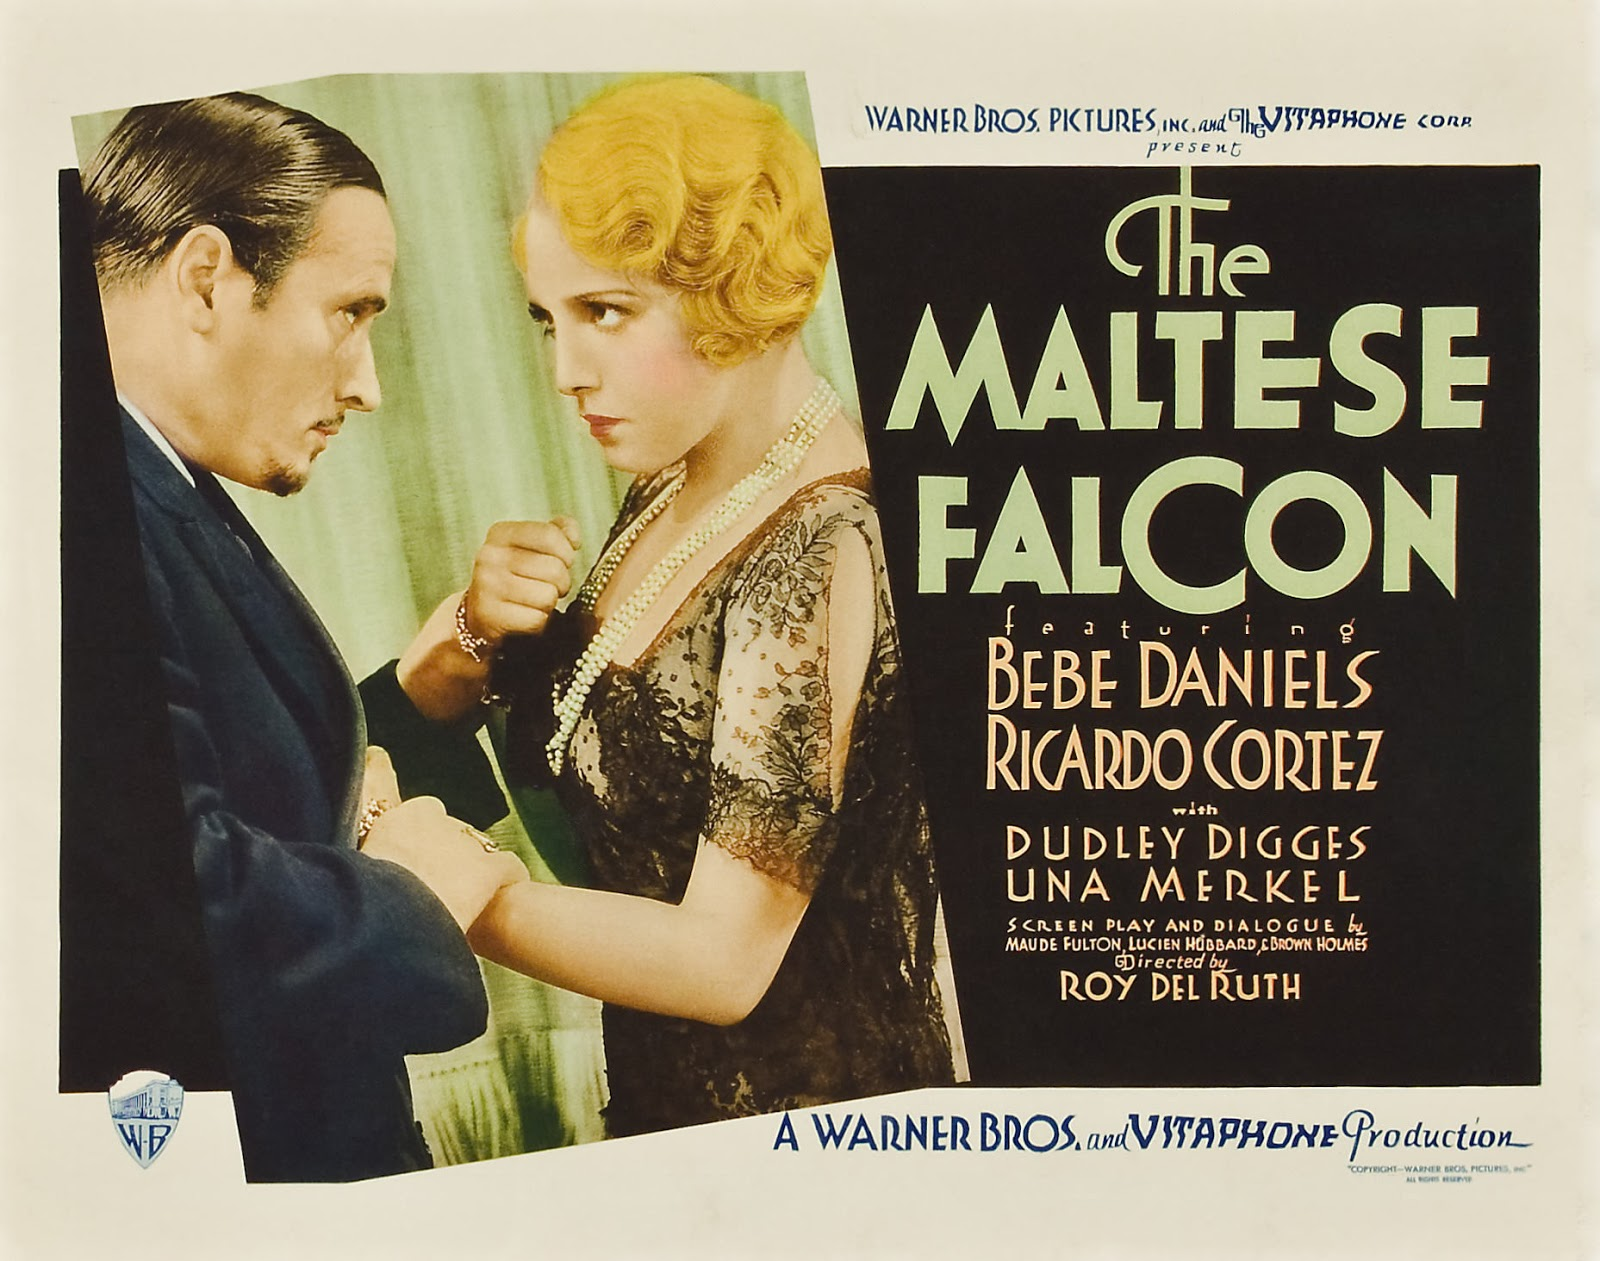 The Maltese Falcon, starring Ricardo Cortez and Bebe Daniels